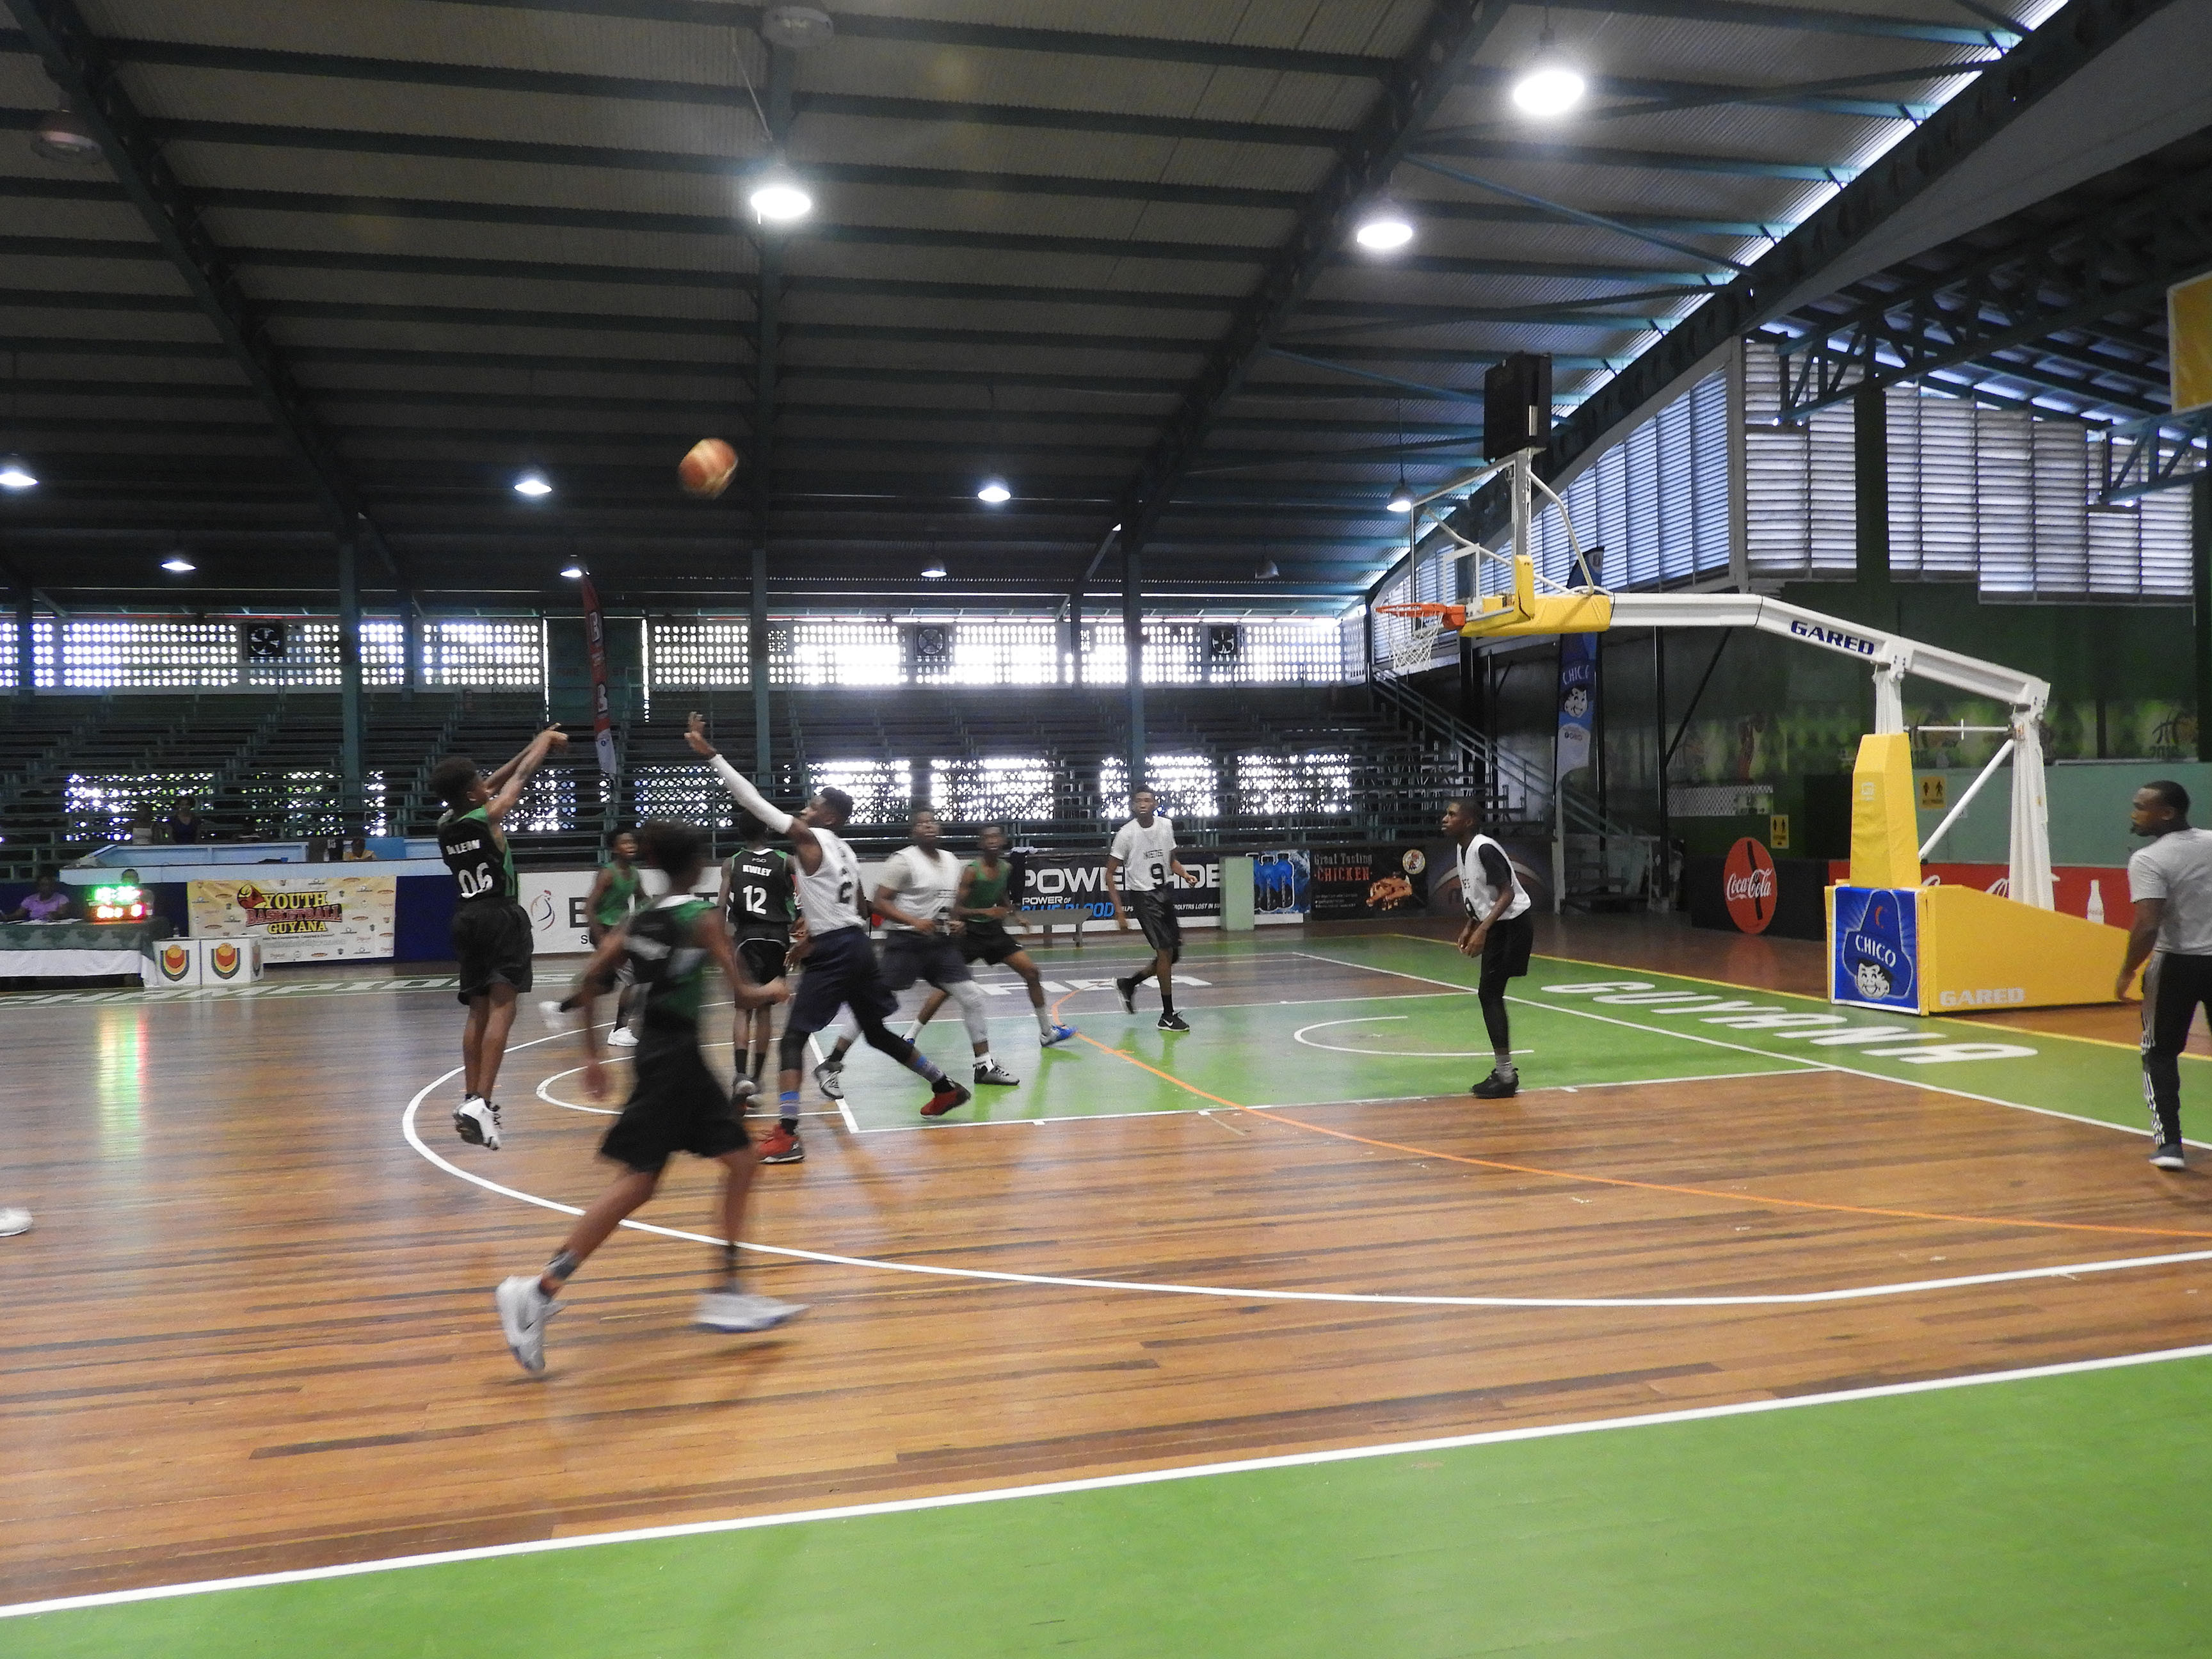 hardwood flooring georgetown ontario of st joseph marian academy and north g town notch wins stabroek news within action between chase academy and north georgetown in the national school basketball festival at the cliff anderson sports hall homestretch avenue